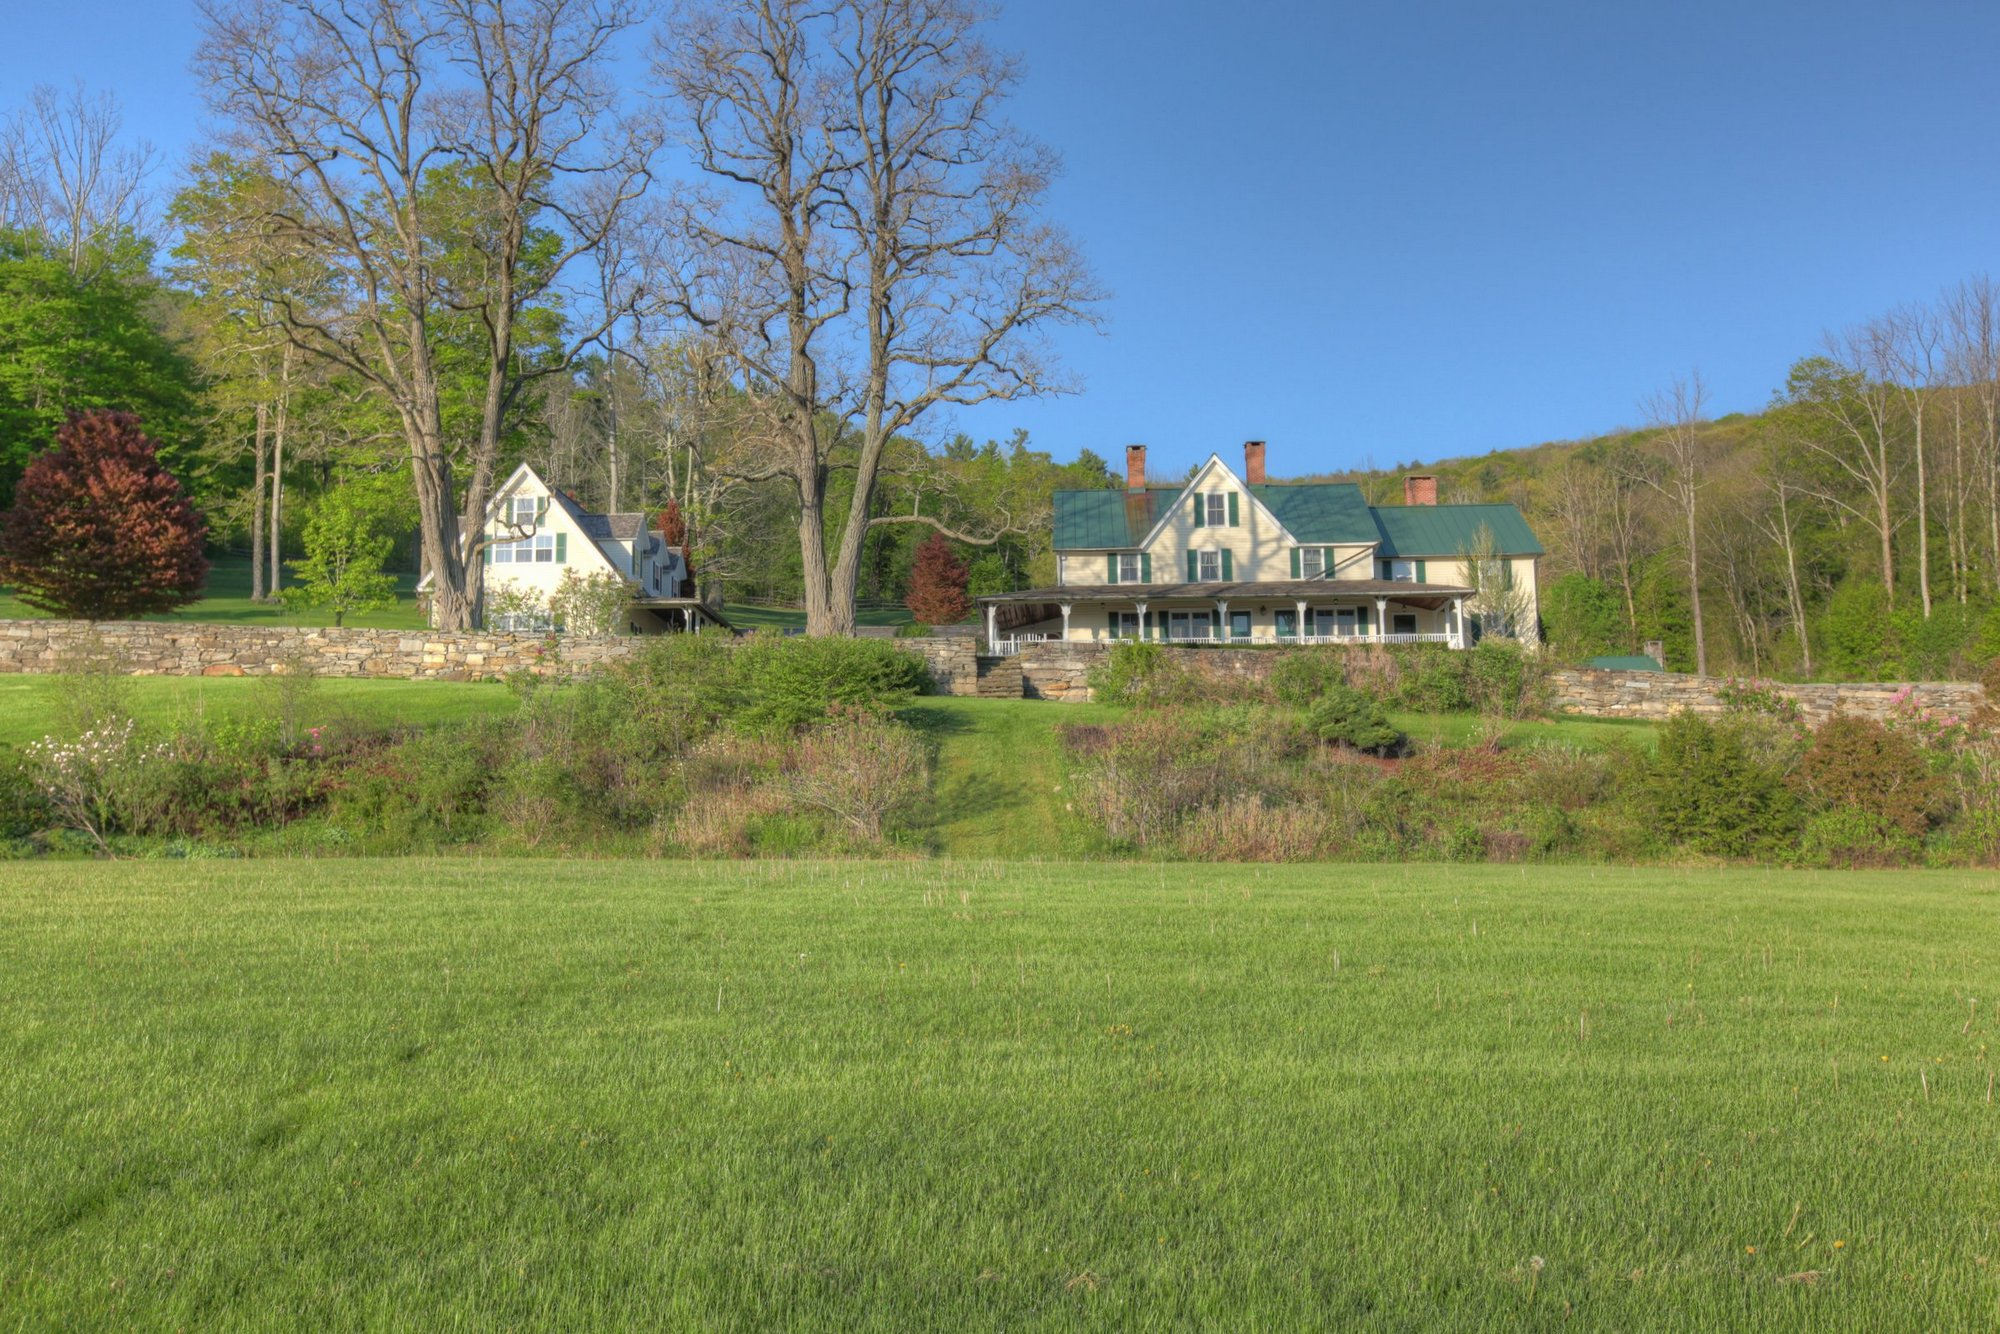 ...the circa 1800 Manor House originally constructed by the North Family of the unique and tiny Tyringham Shaker community...